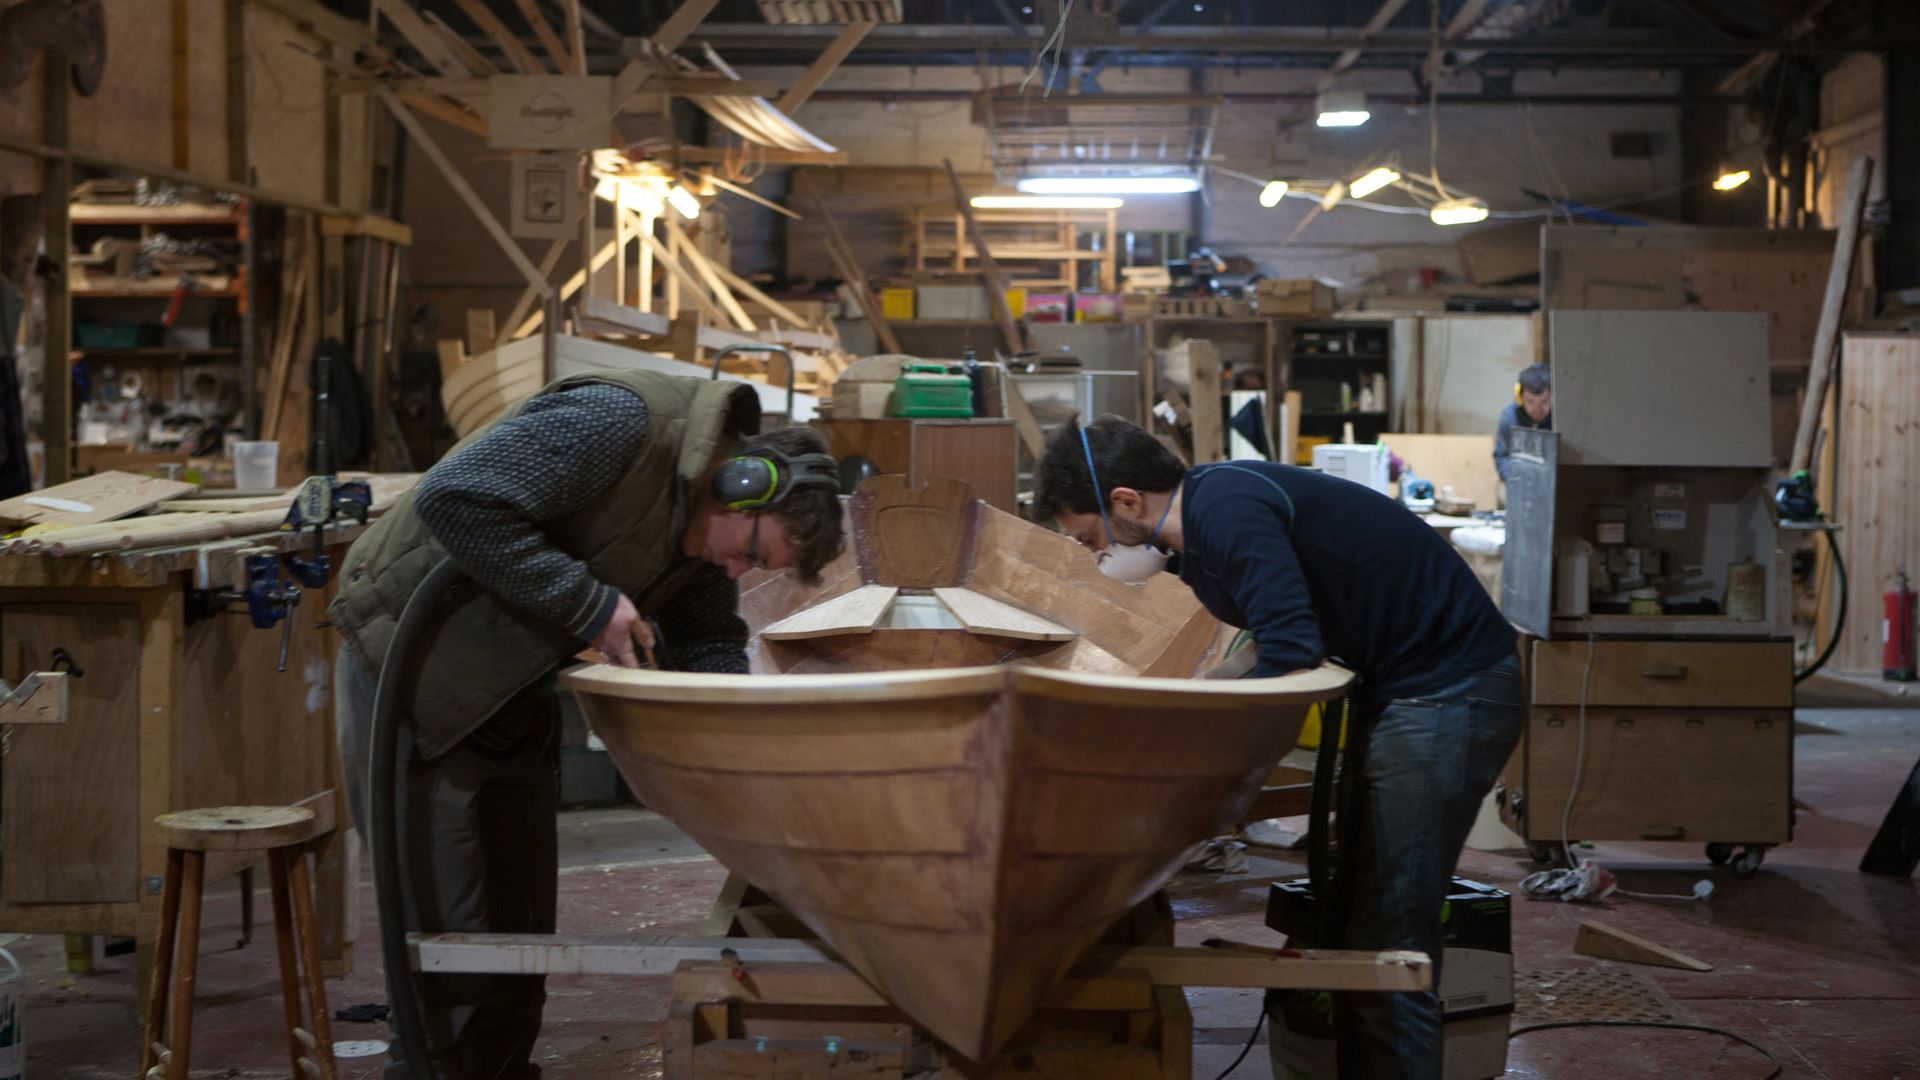 Two men working on a boat in the workshop